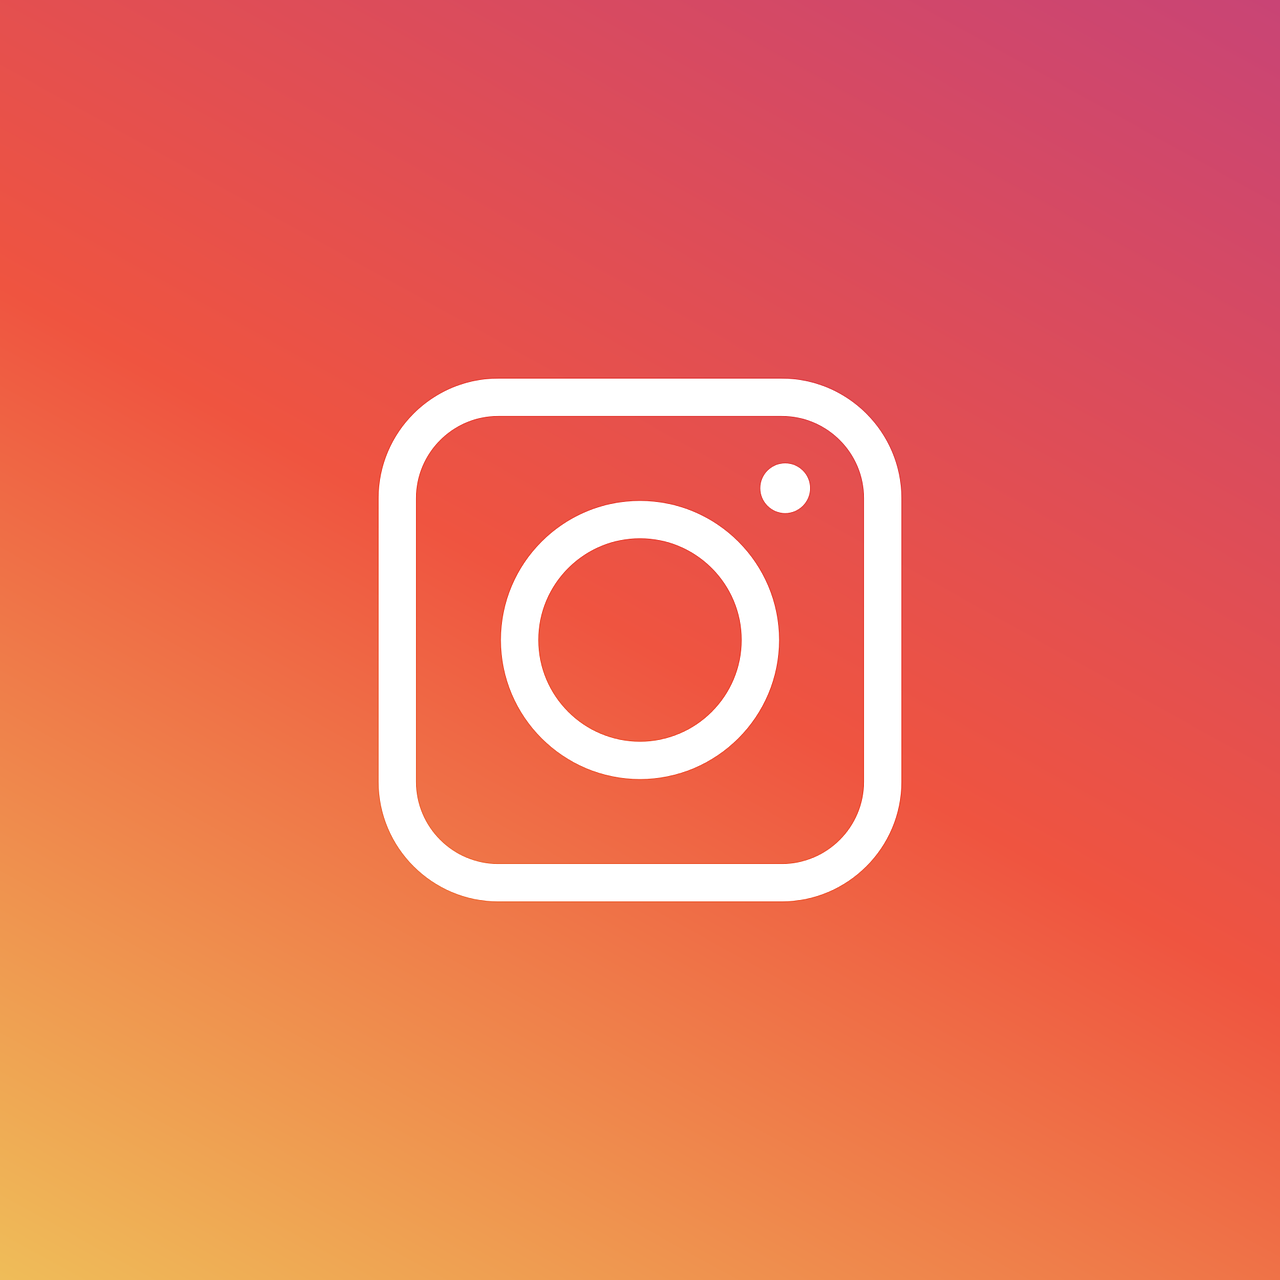 What is more important? Instagram Followers vs. Credit Score